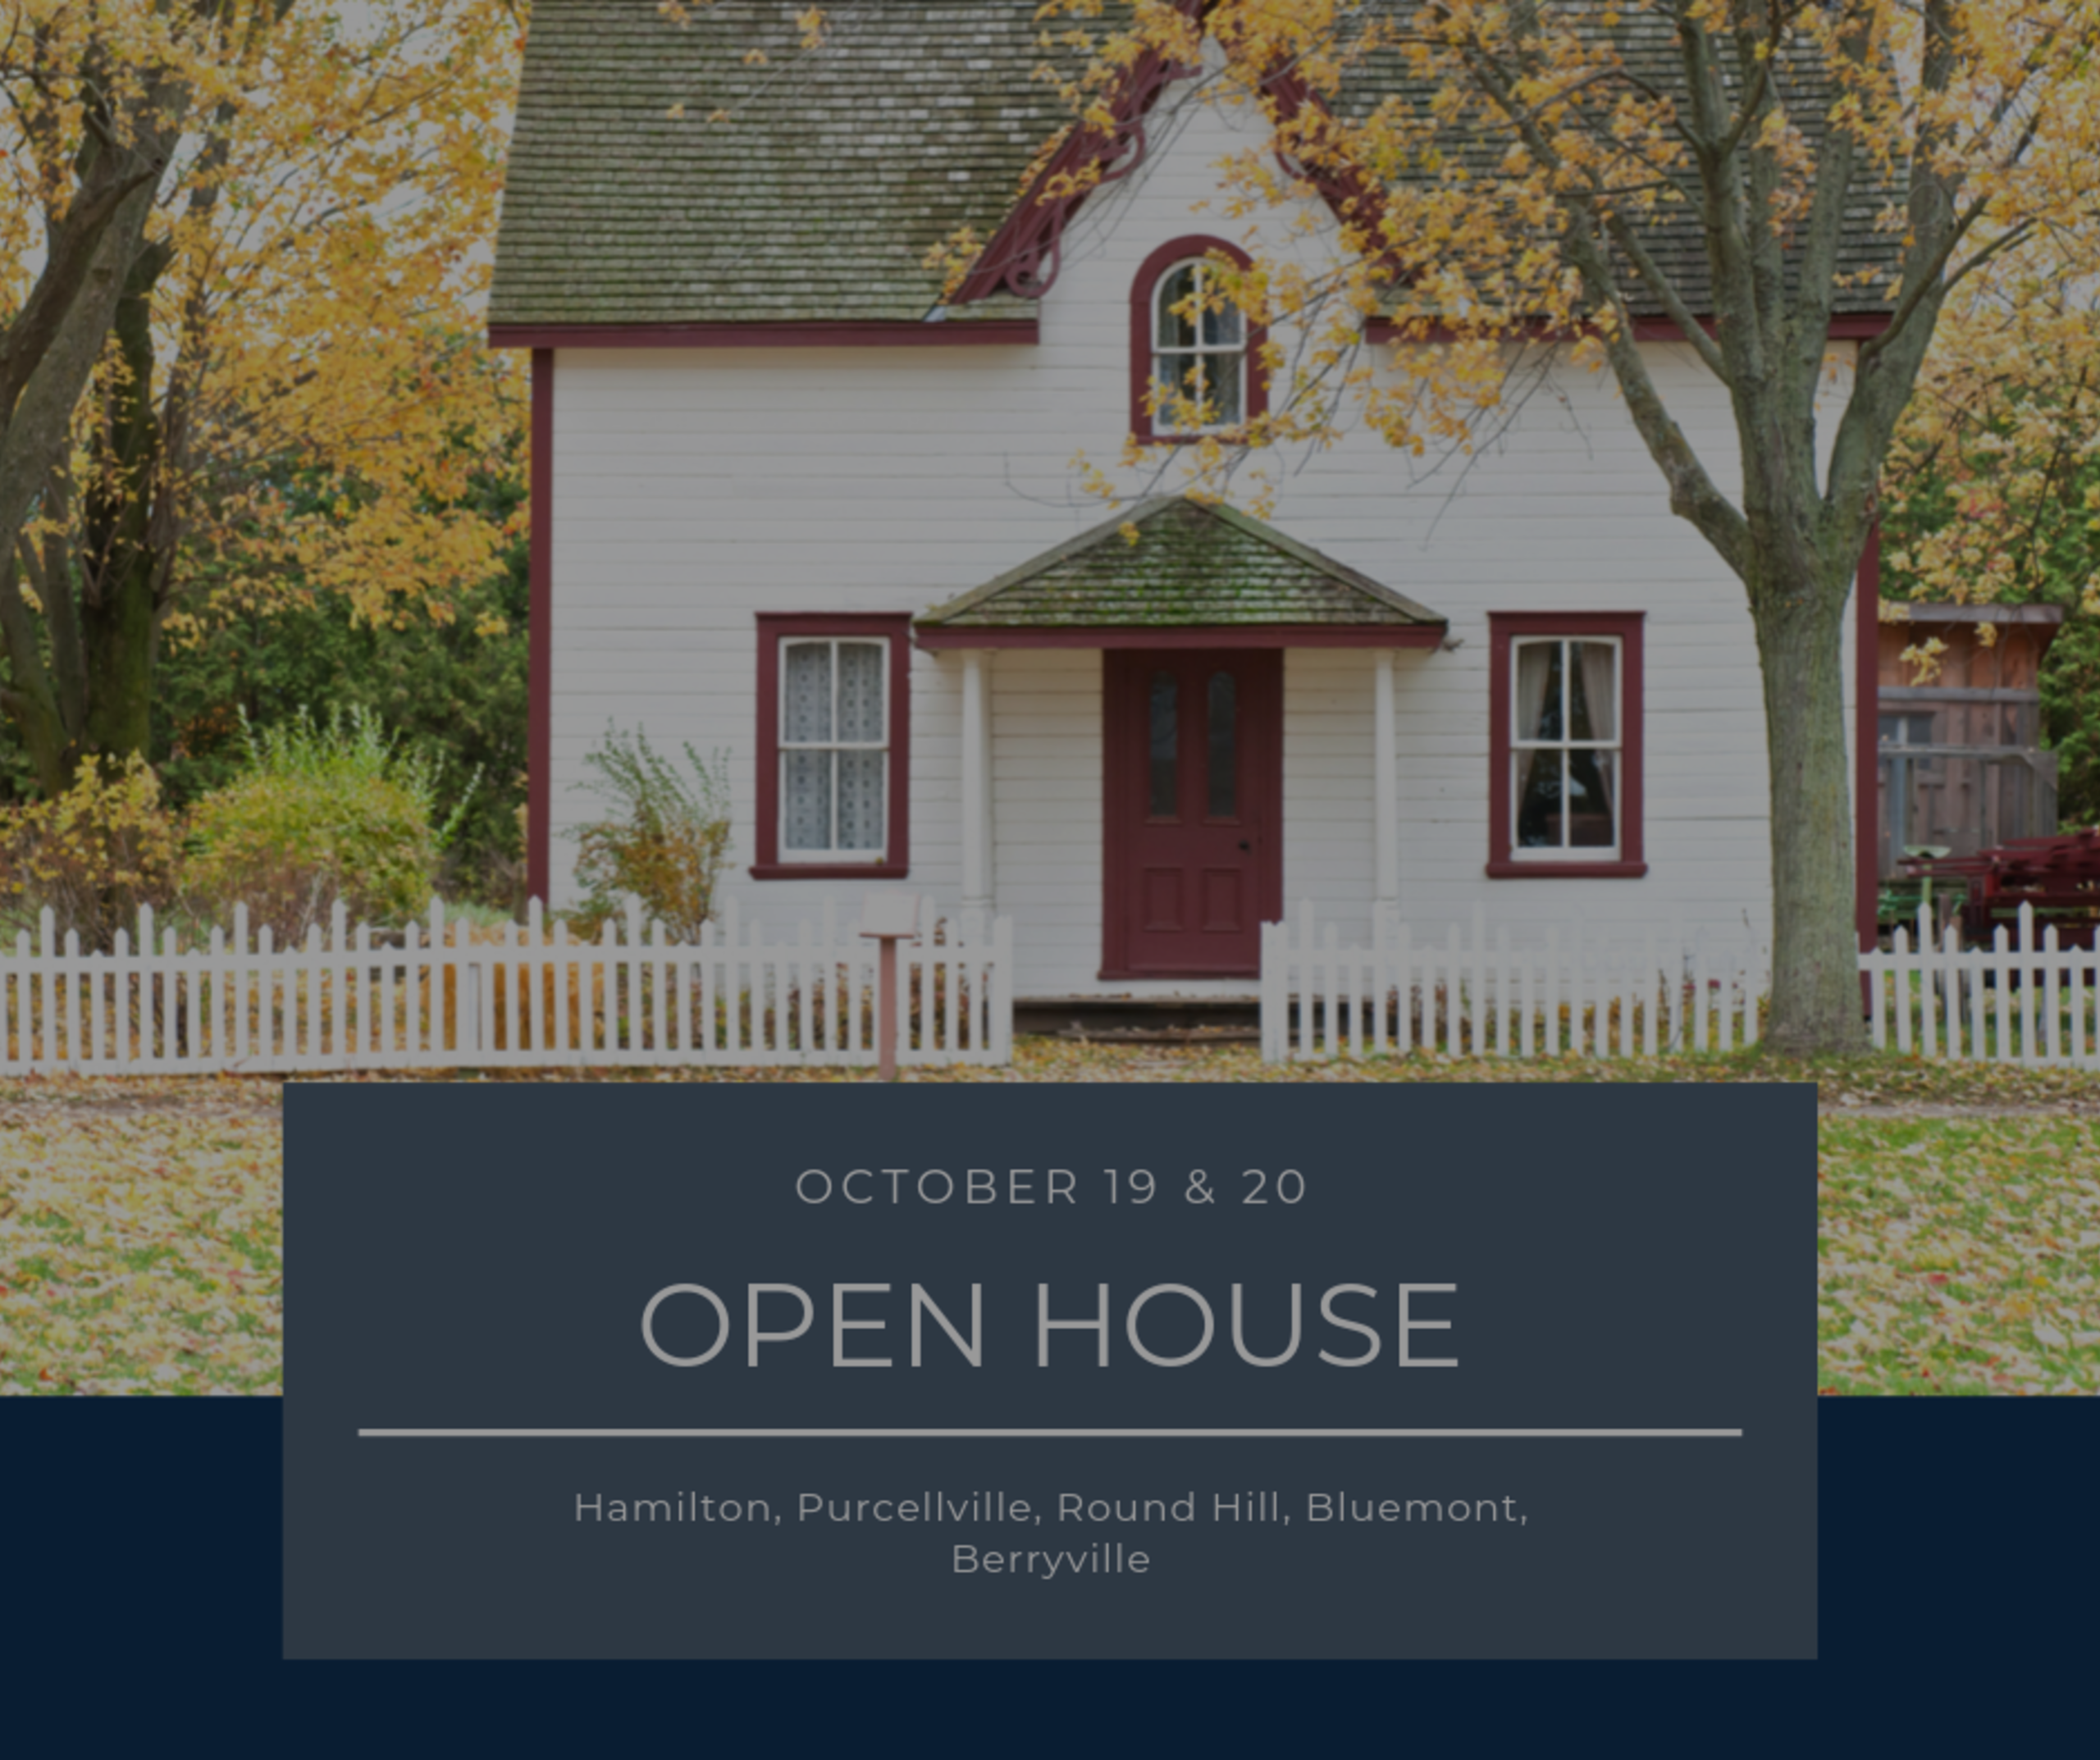 Open House List 10/19/19 – 10/20/19